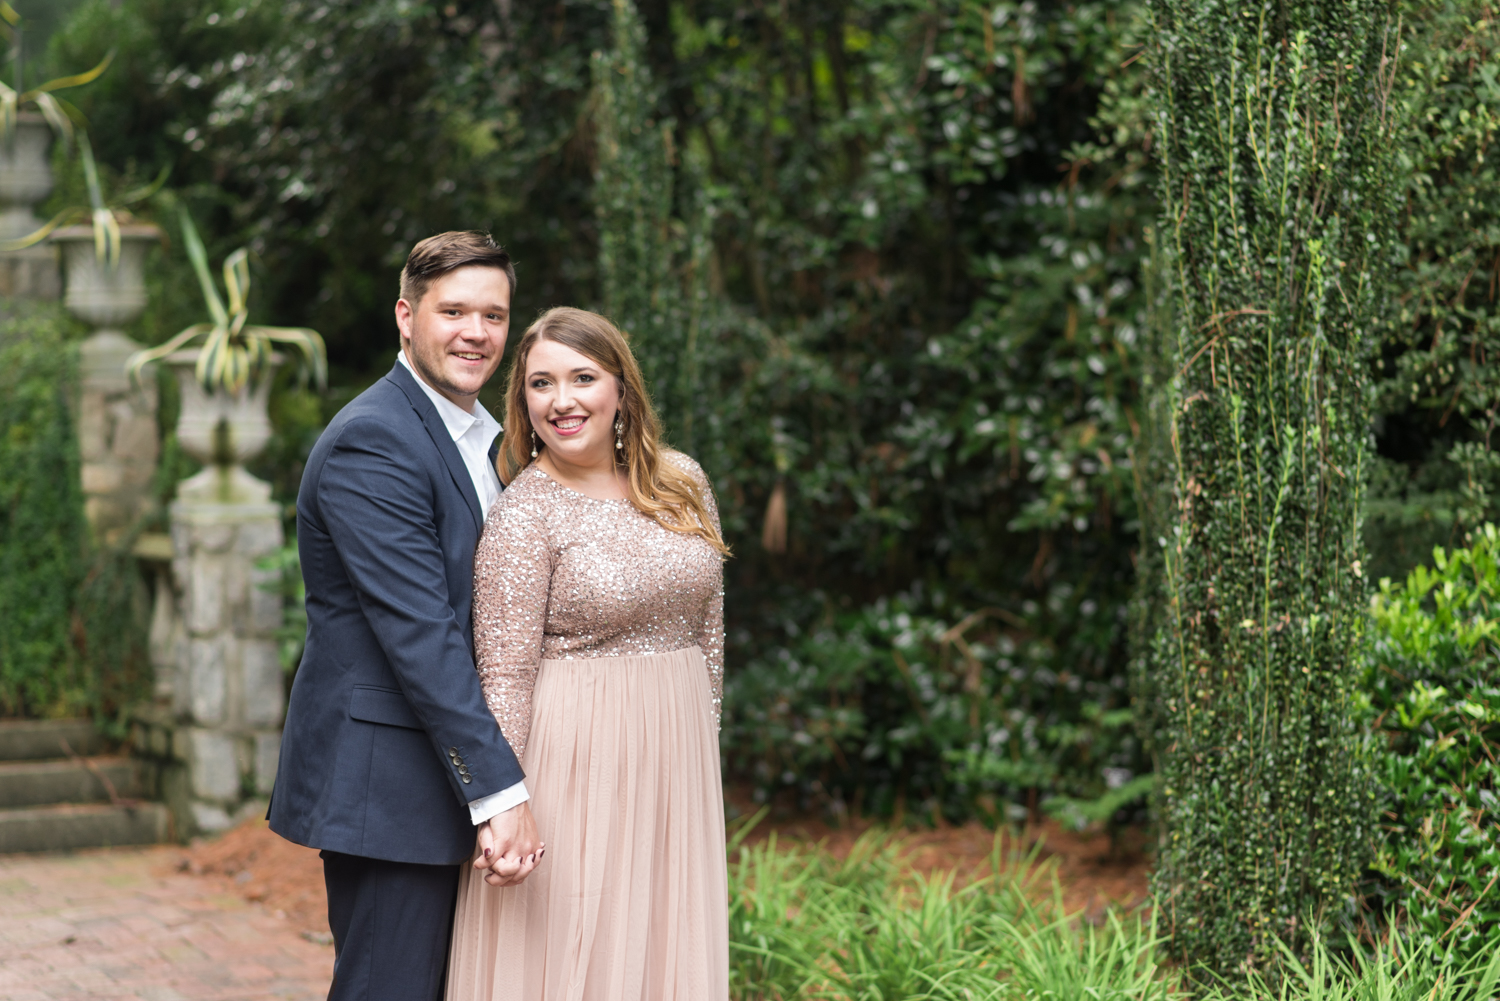 Formal Engagement Session at Norfolk Botanical Garden-14.jpg